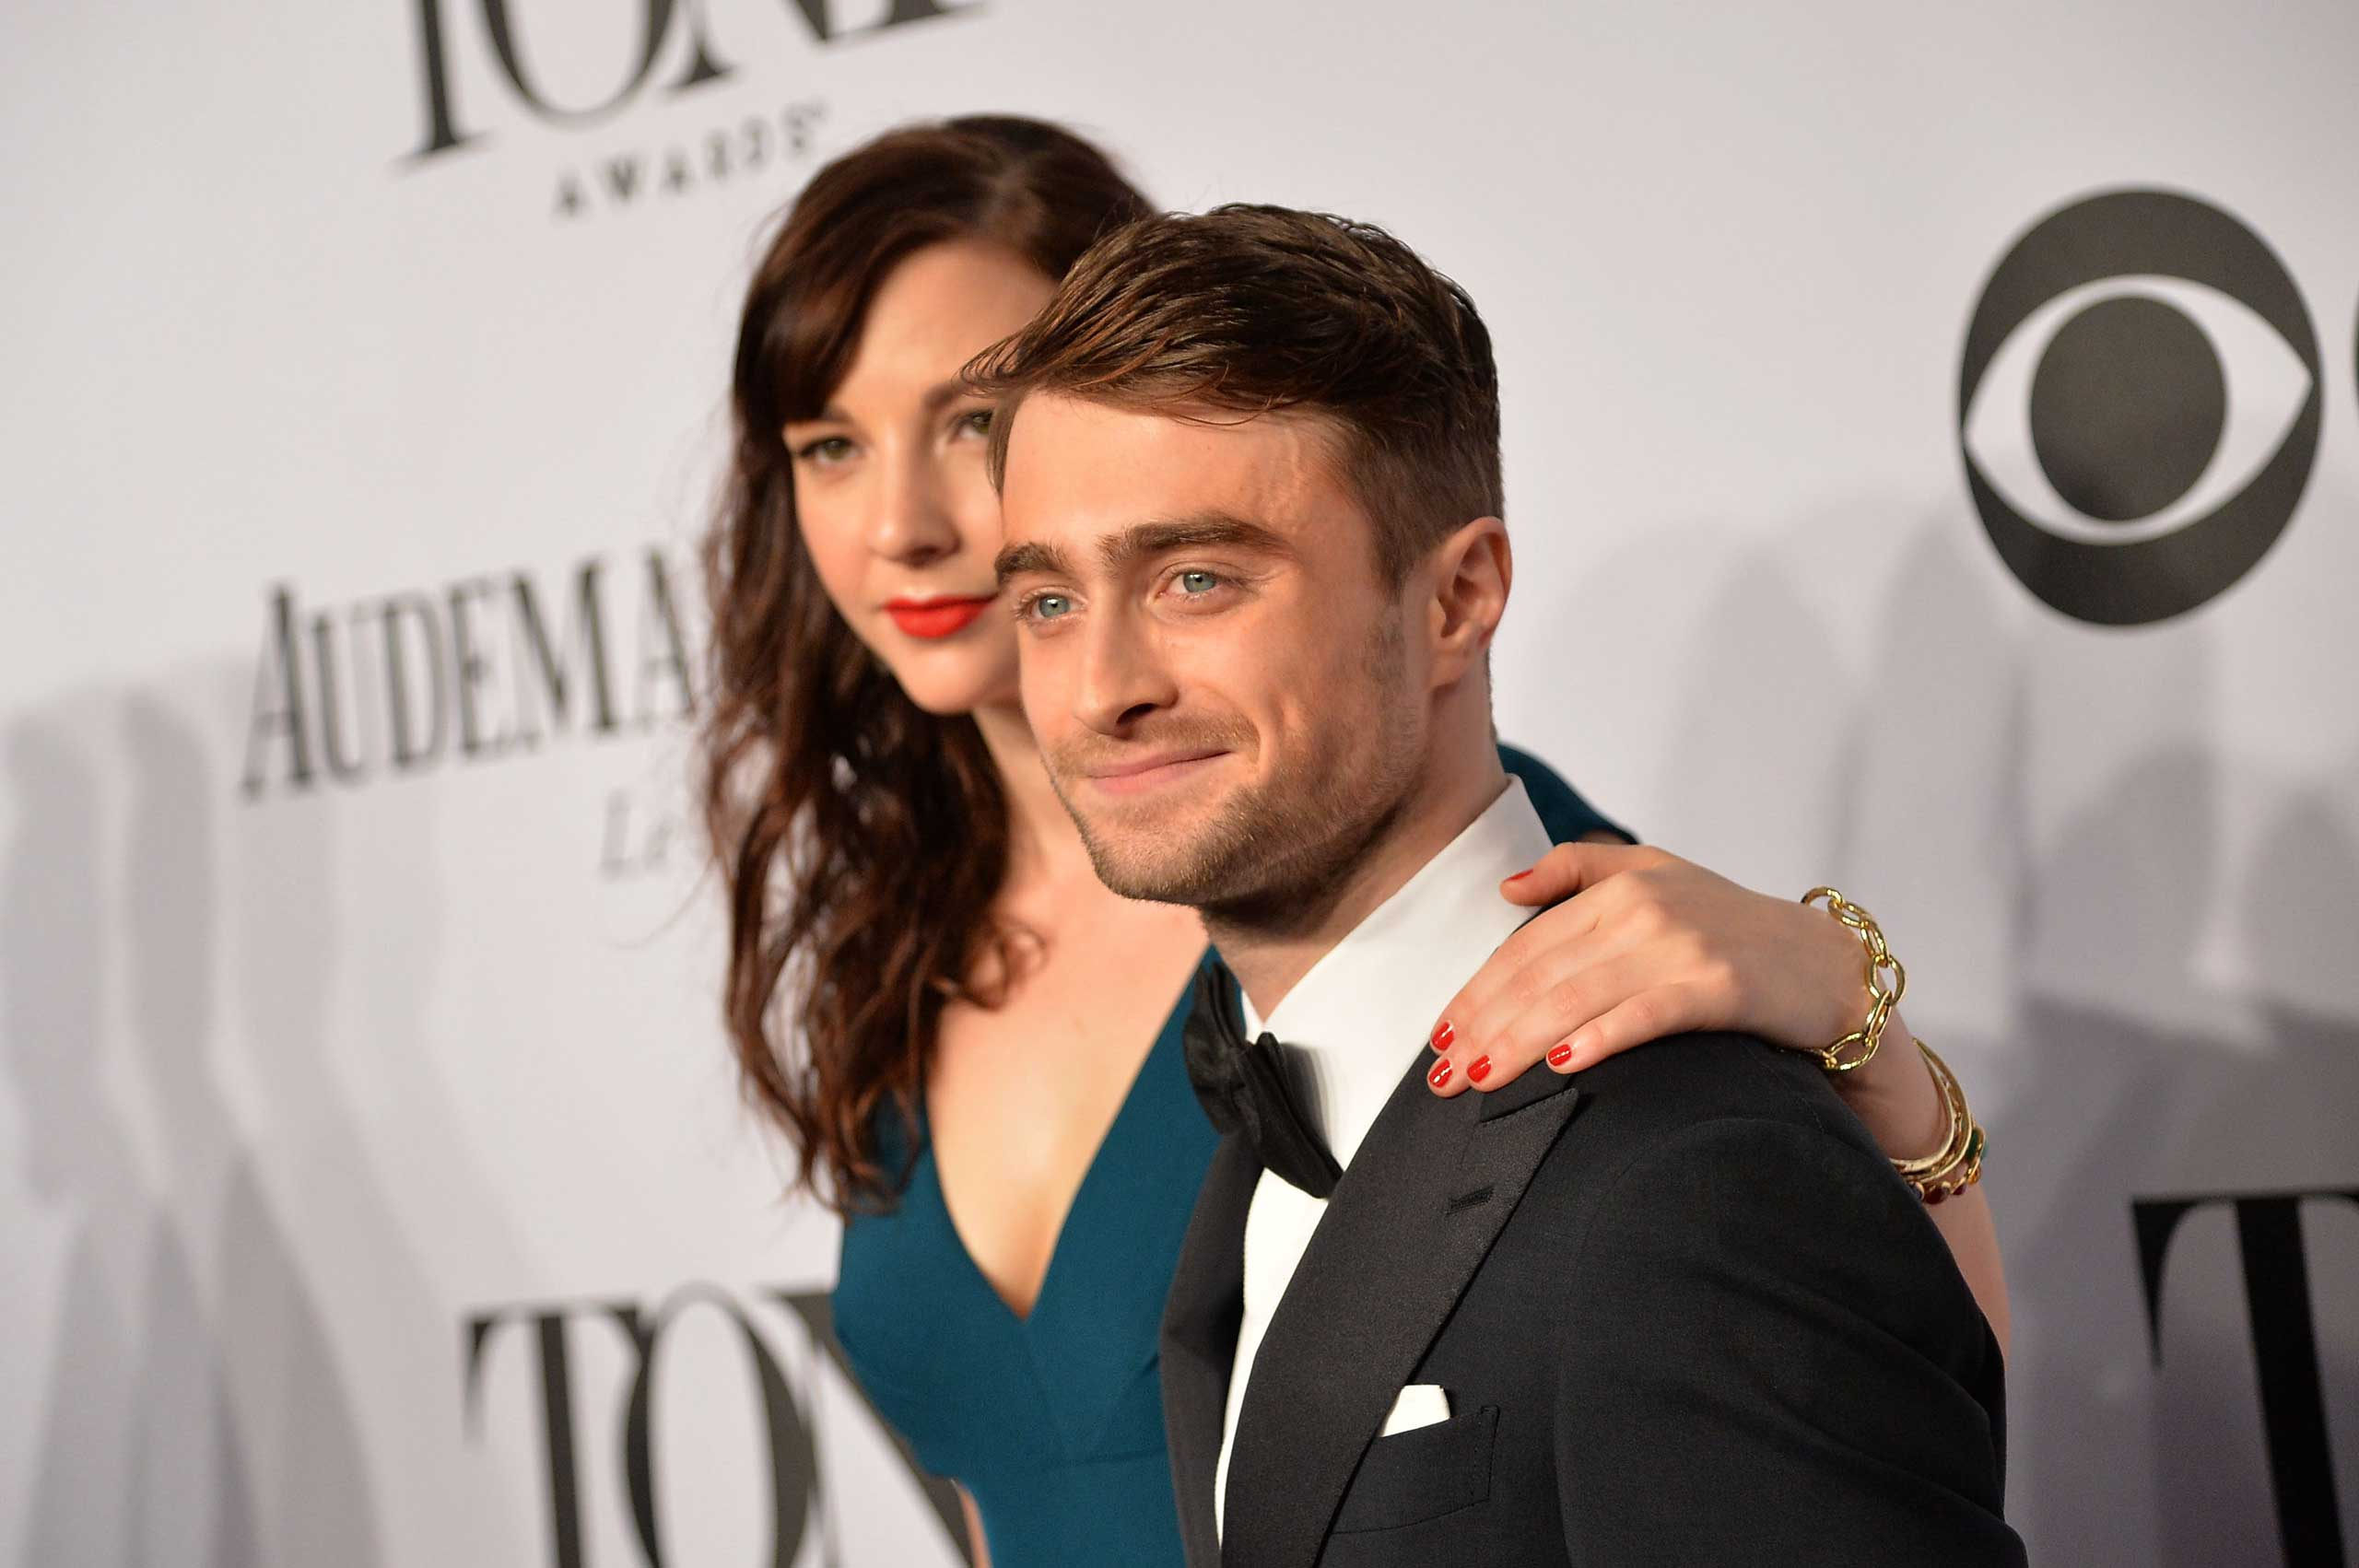 Daniel Radcliffe and Erin Darke at the 68th Annual Tony Awards in New York, June 8, 2014.